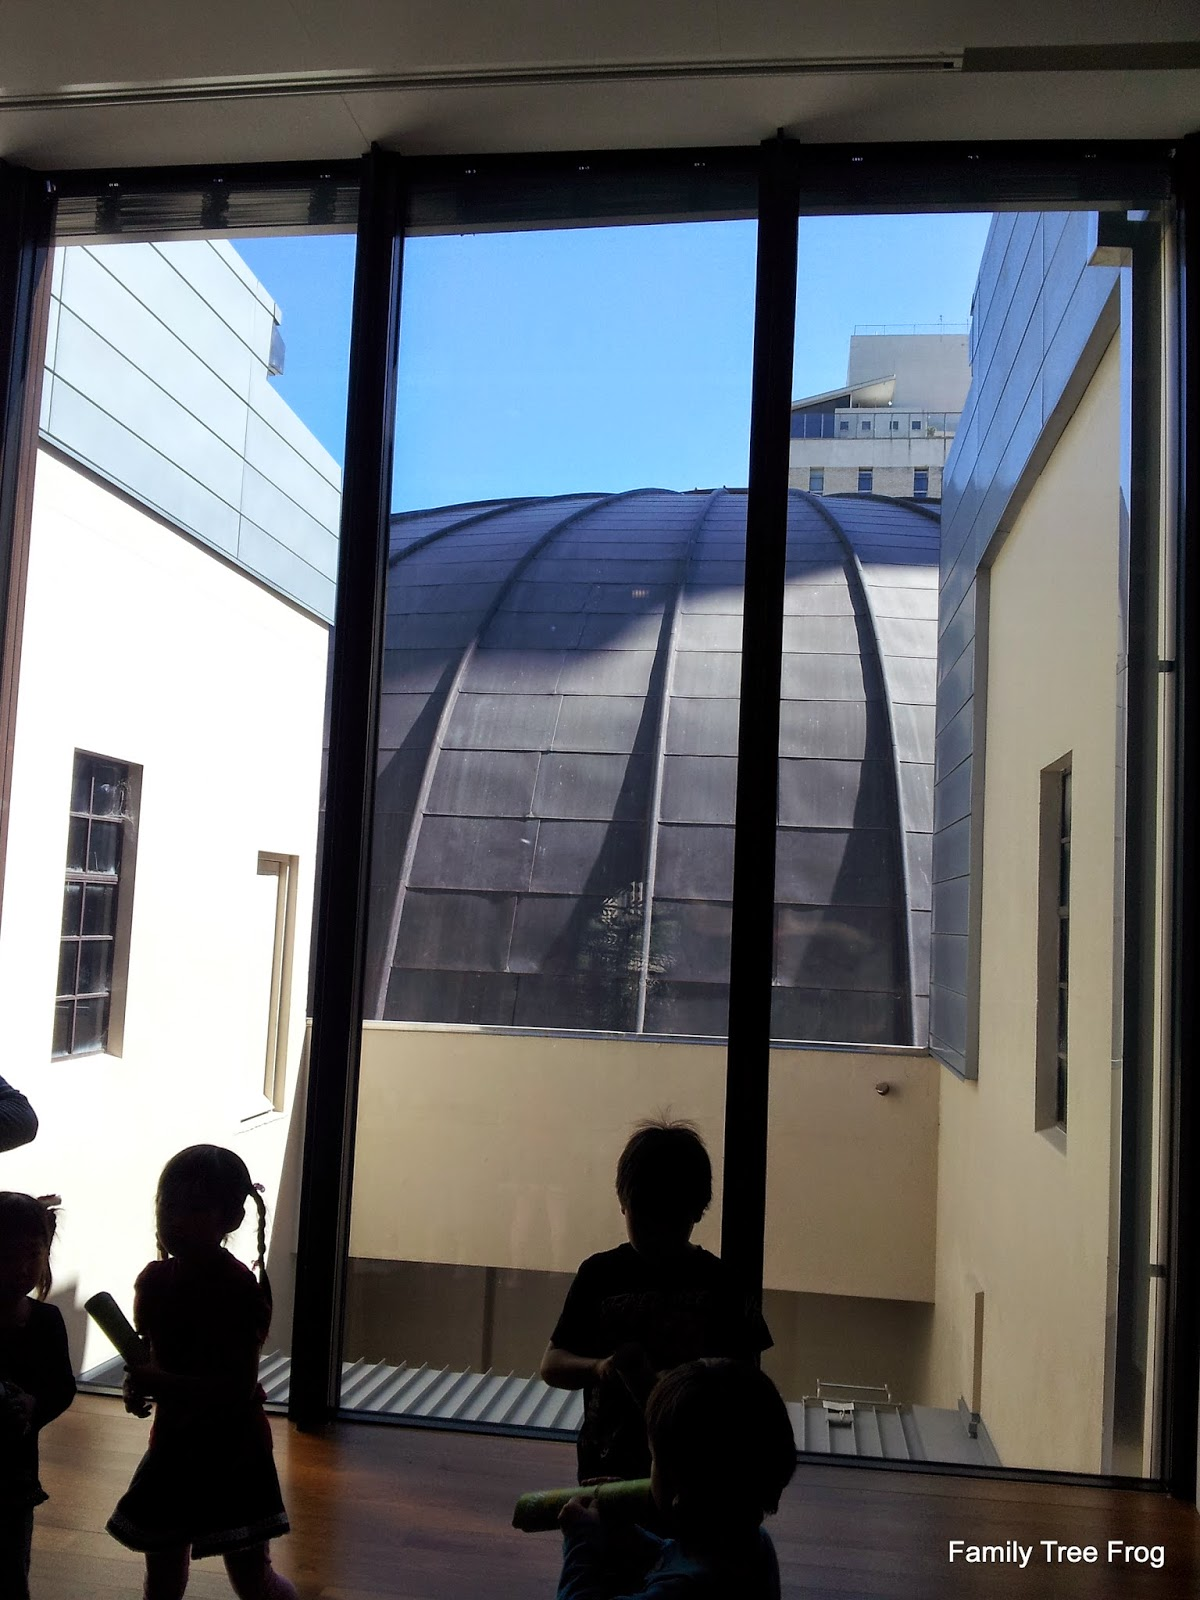 silhouettes of children in Museum of Brisbane looking out at dome of City Hall